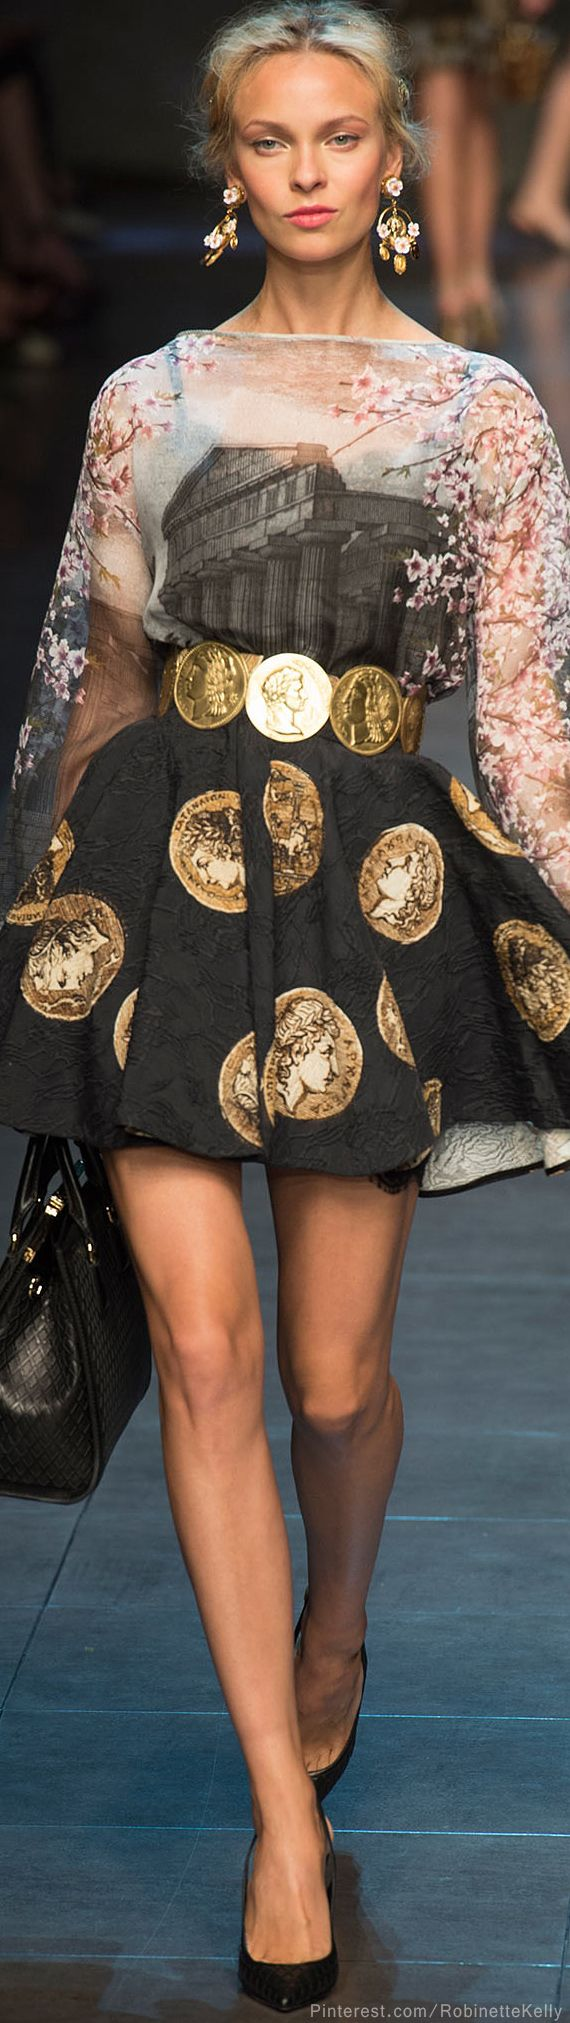 Dolce & Gabbana | S/S 2014  - 'Live The Good Life - All about Luxury Lifestyle